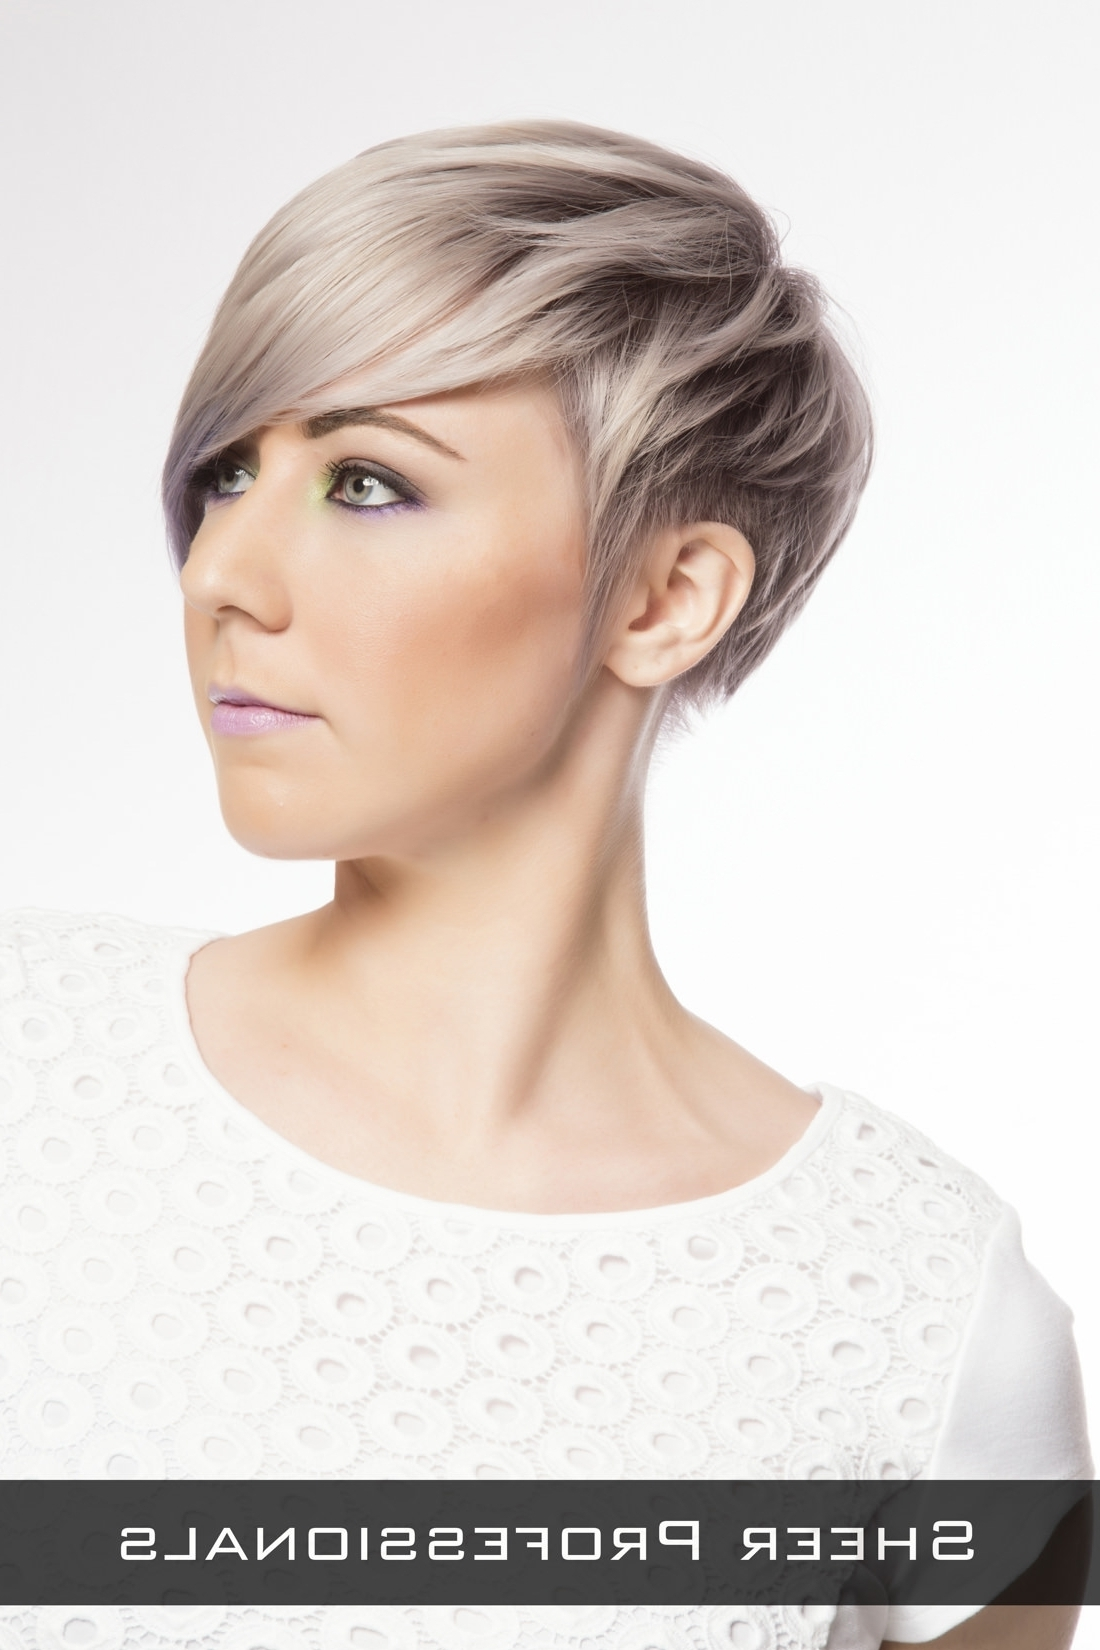 Short Hairstyles With Side Fringe Long Hairstyles With Short Bangs Throughout Recent Pixie Hairstyles With Long Side Swept Bangs (View 5 of 15)